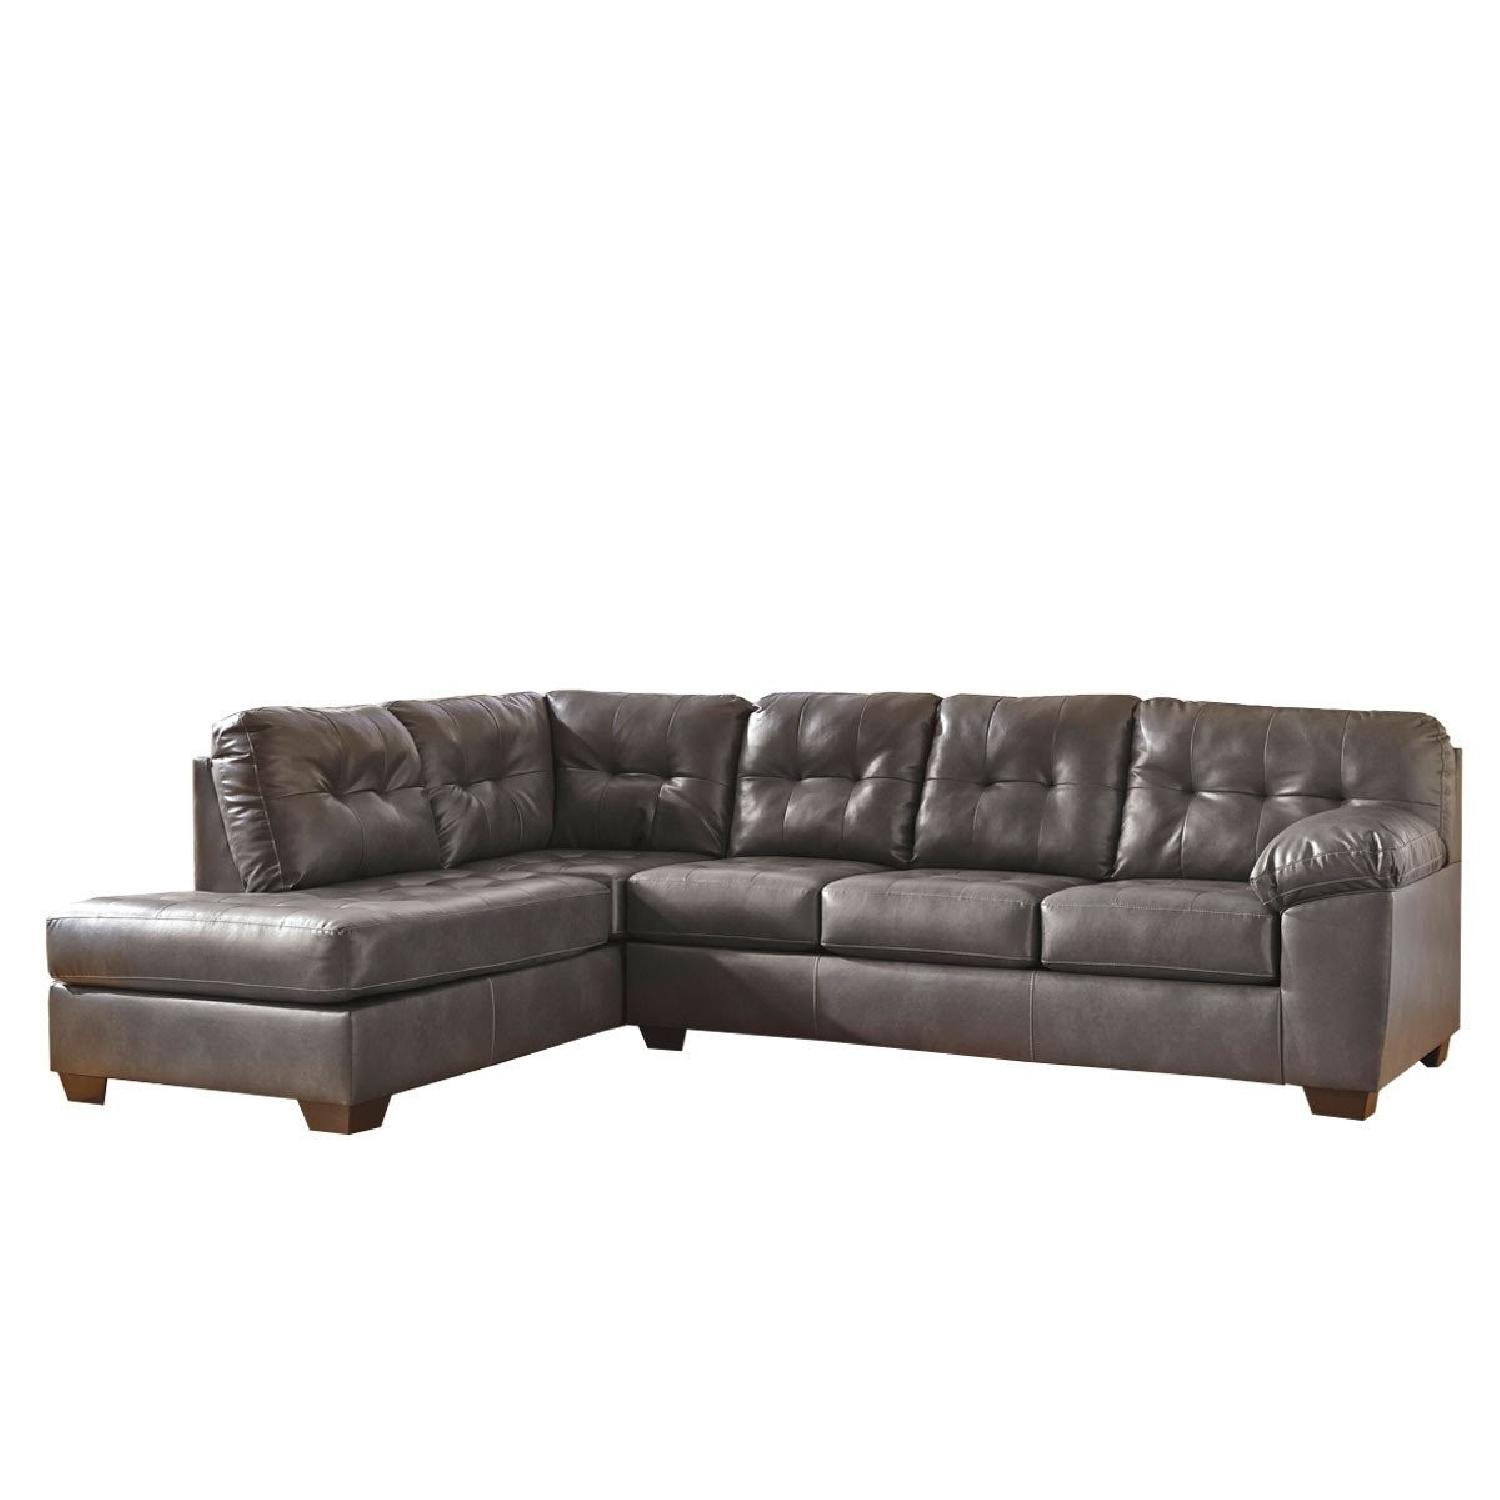 Jennifer Convertibles Grey Tufted Leather Sectional Sofa